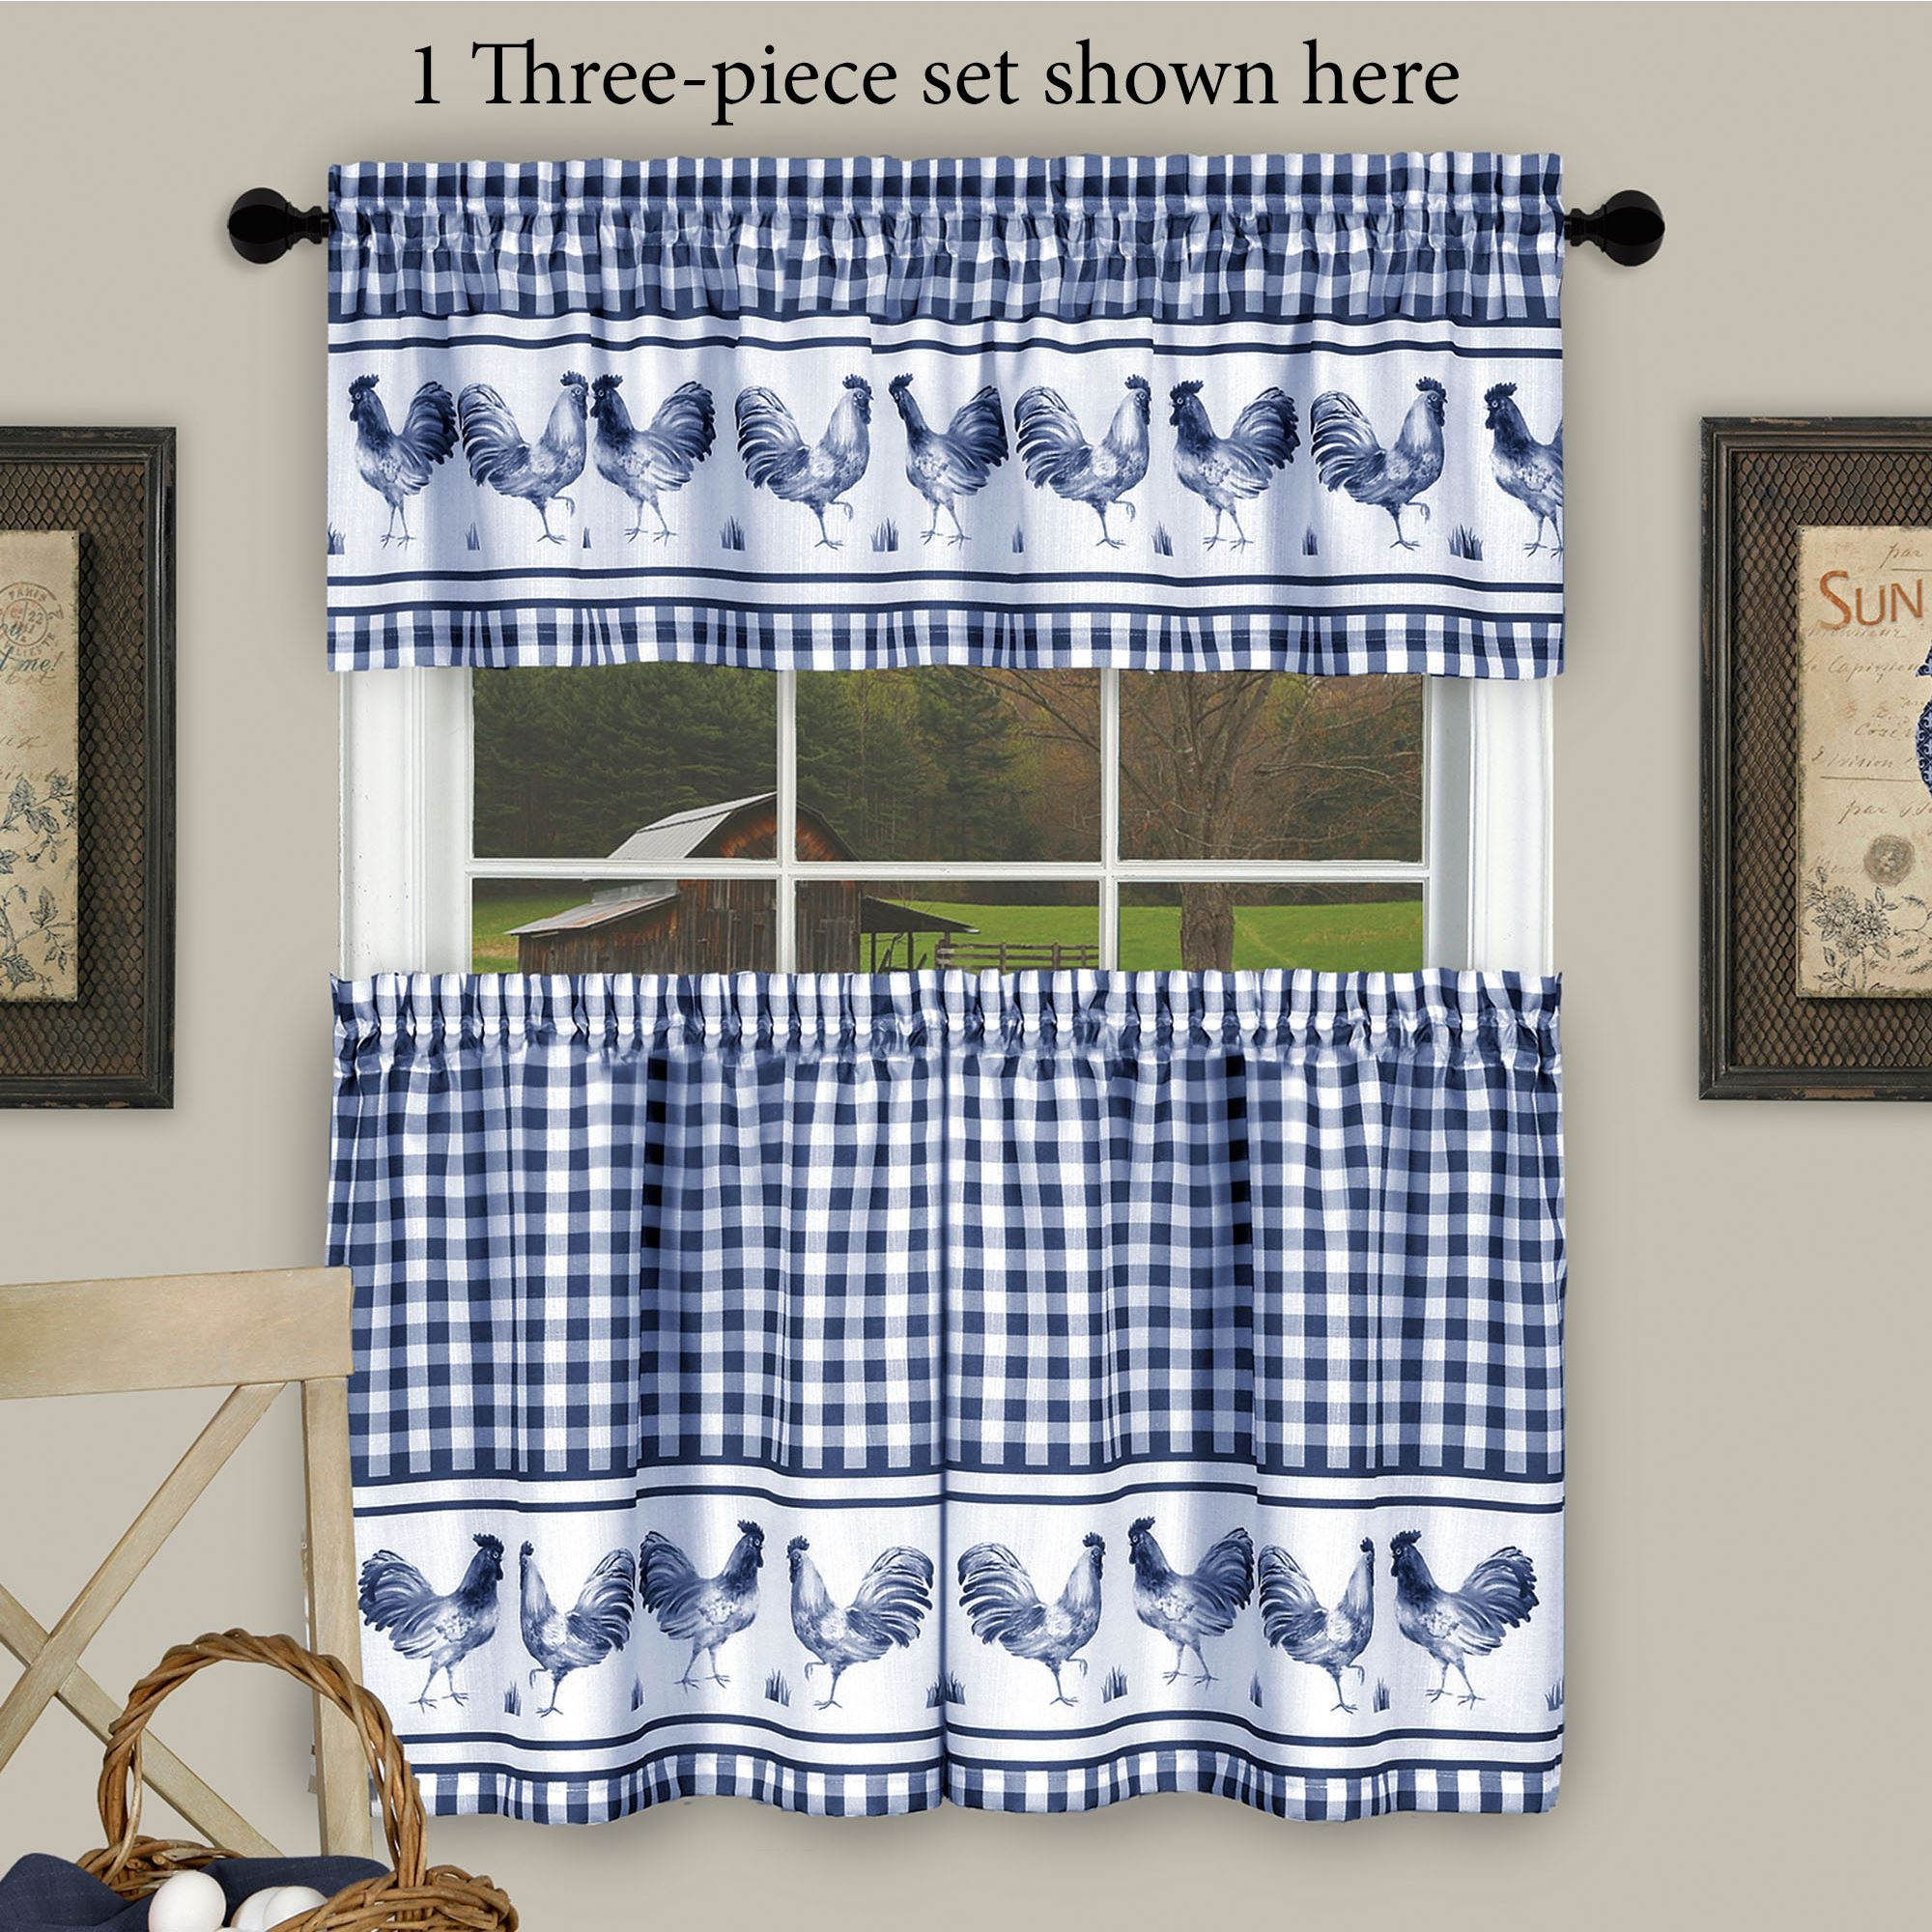 Backyard Biddy Midnight Blue Rooster Kitchen Tier and Valance Set